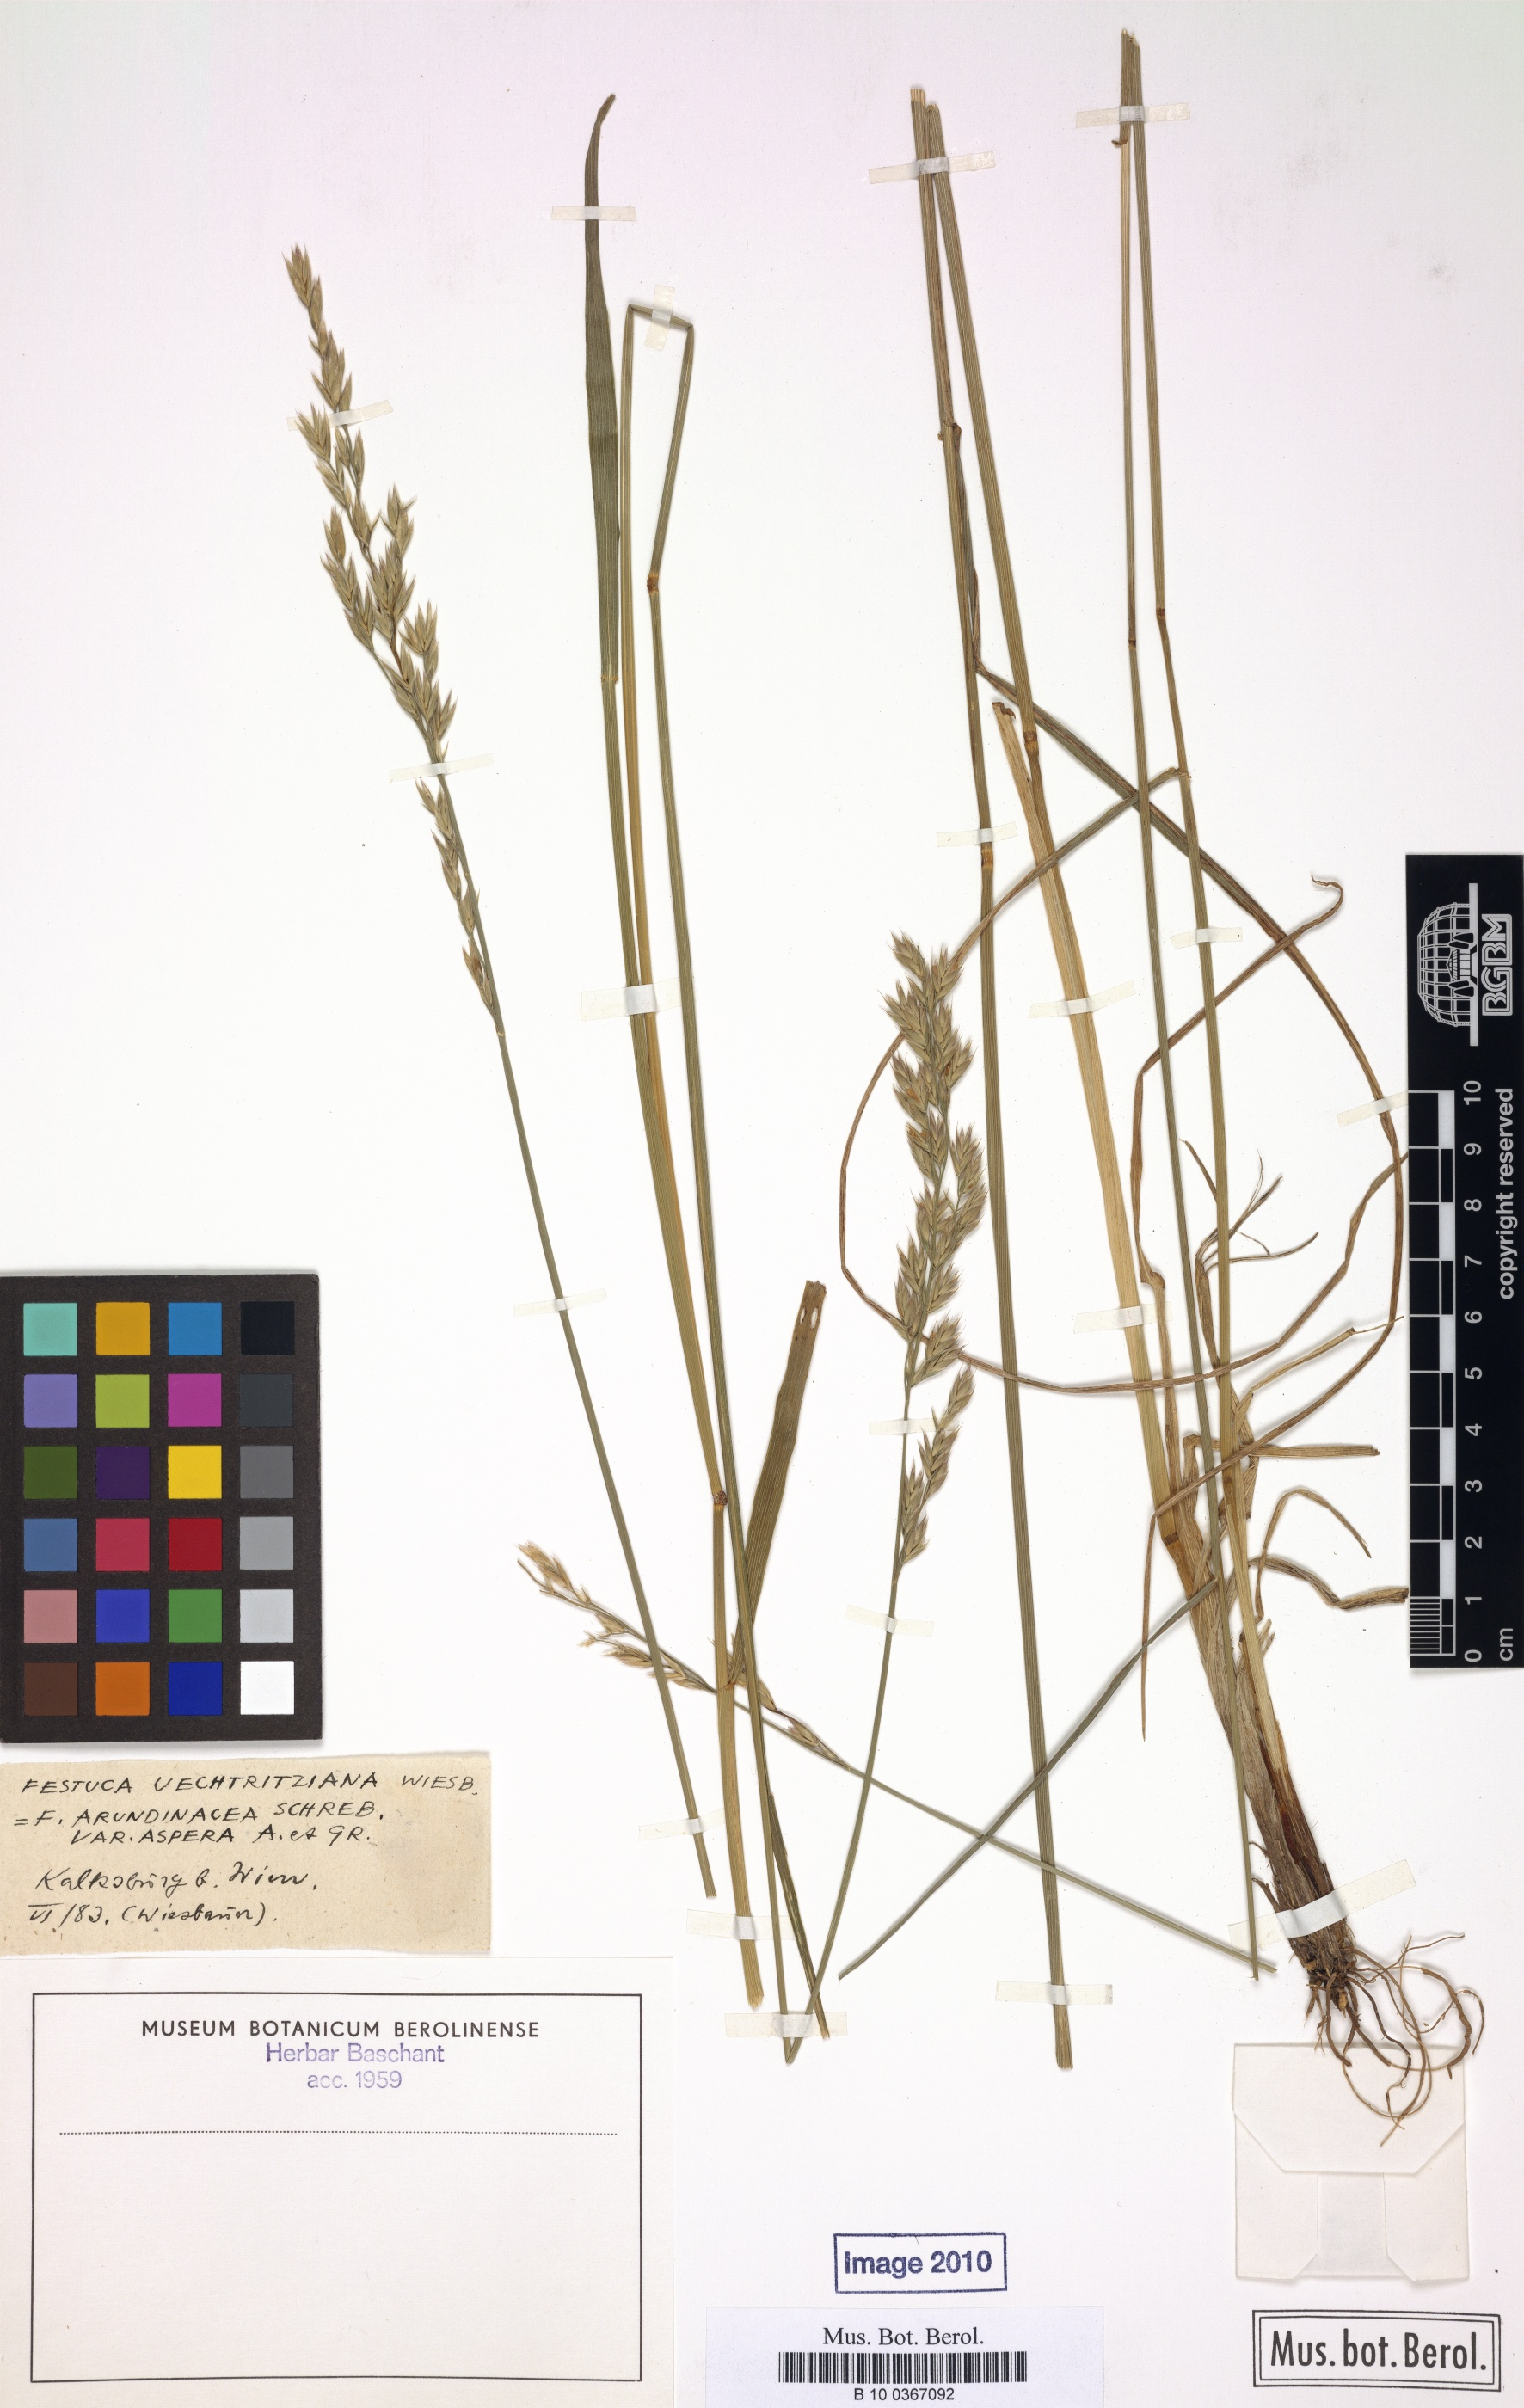 © Botanic Garden and Botanical Museum Berlin-Dahlem, Freie Universität Berlin<br>by  Röpert, D. (Ed.) 2000- (continuously updated): Digital specimen images at the Herbarium Berolinense. - Published on the Internet http://ww2.bgbm.org/herbarium/ (Barcode: B 10 0367092 / ImageId: 308766) [accessed 28-Nov-11].<br>